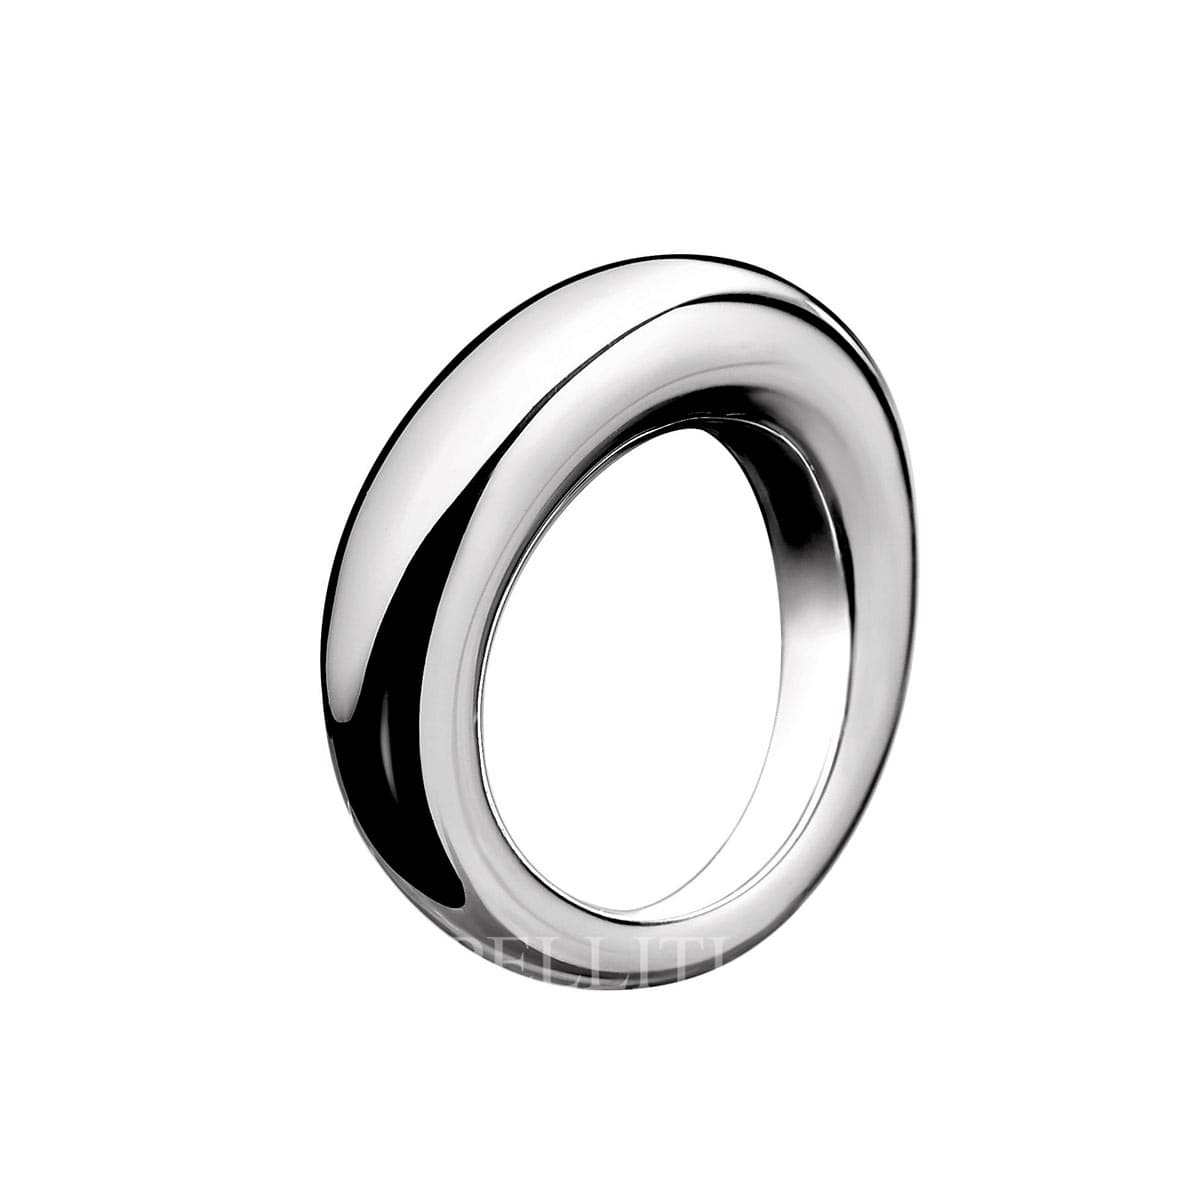 "2e3b45abe976 Idole Ring features a tantalizing single bold circle which delicately wraps  round the finger. A. Christofle ""Idole"" Sterling Silver Bangle Ring"